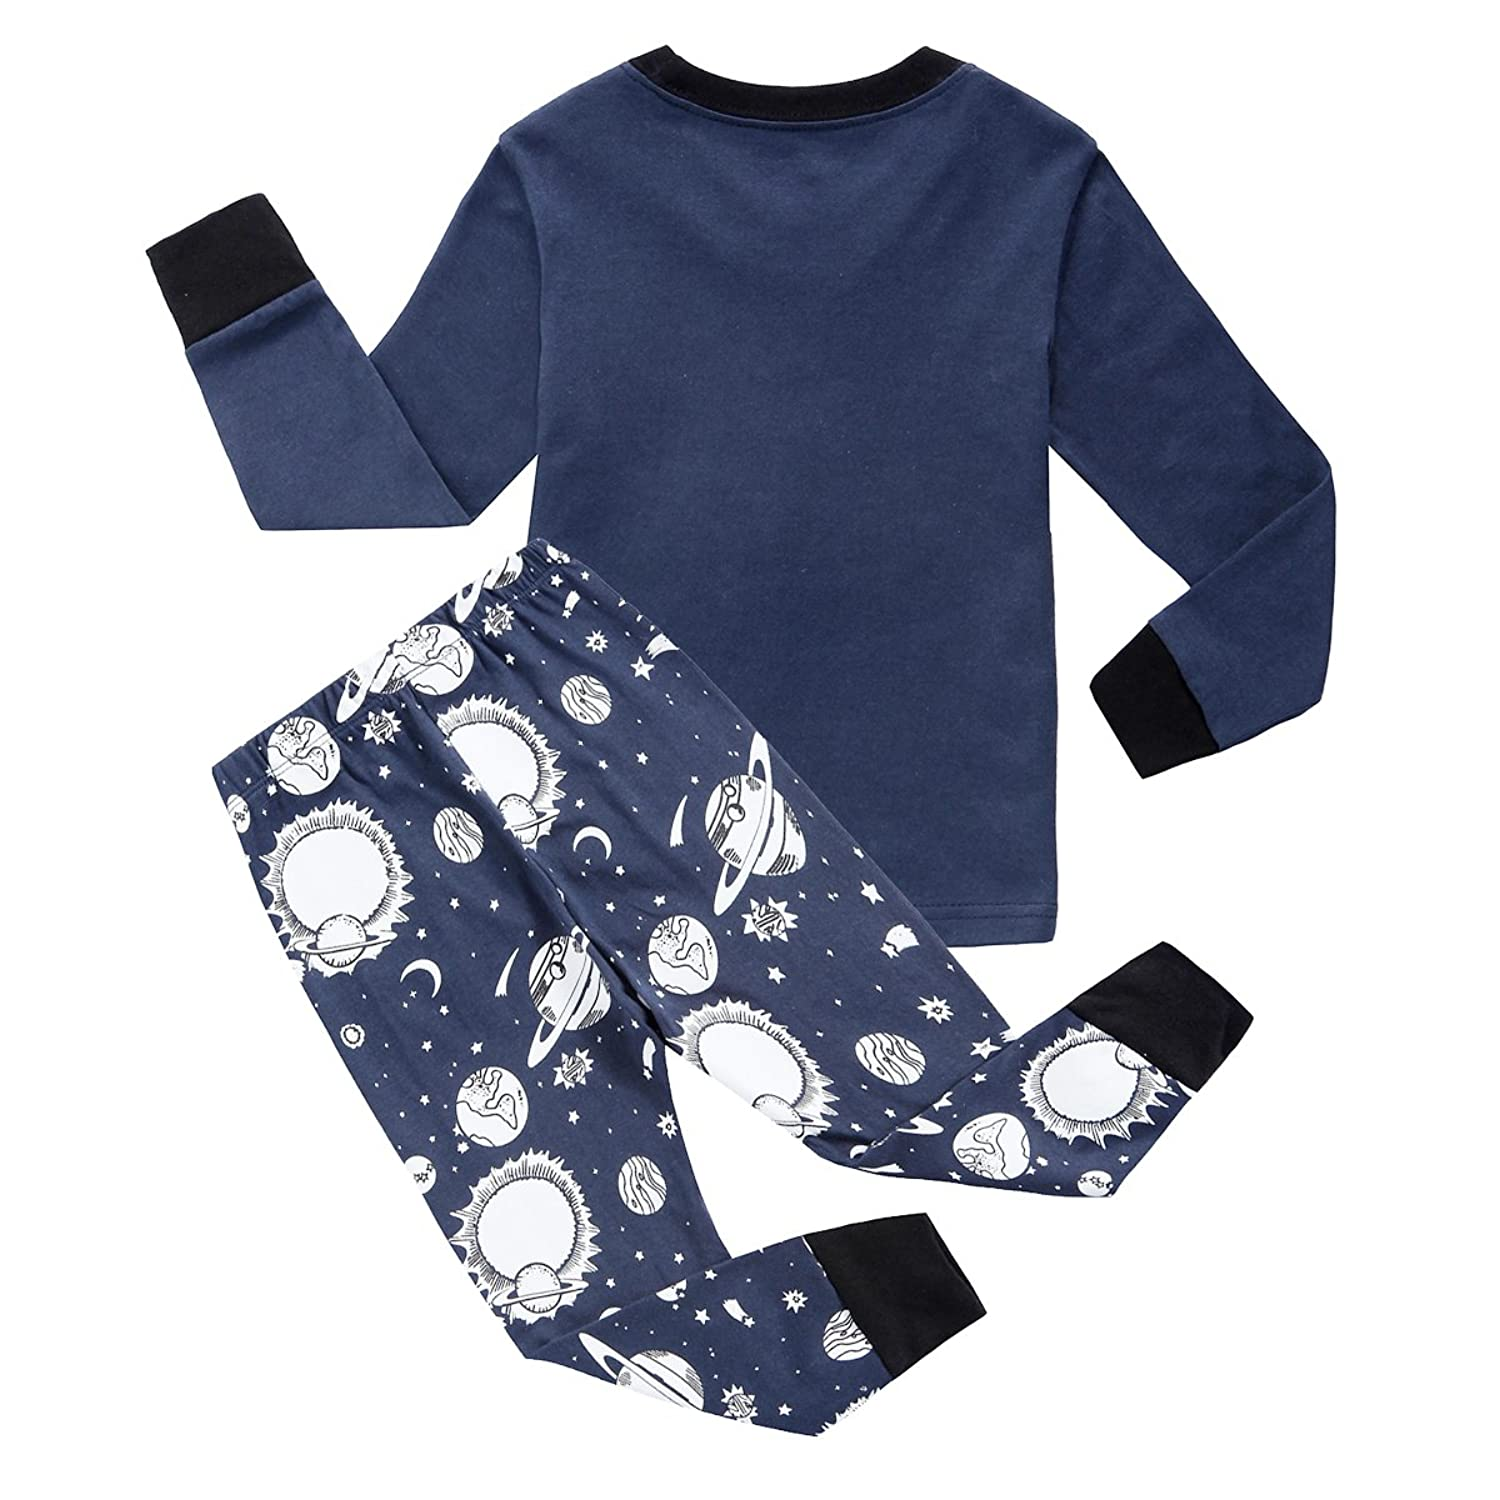 com feyg little boys space pajamas toddler pjs sets 100  com feyg little boys space pajamas toddler pjs sets 100% cotton sleepwears size 2 7t clothing